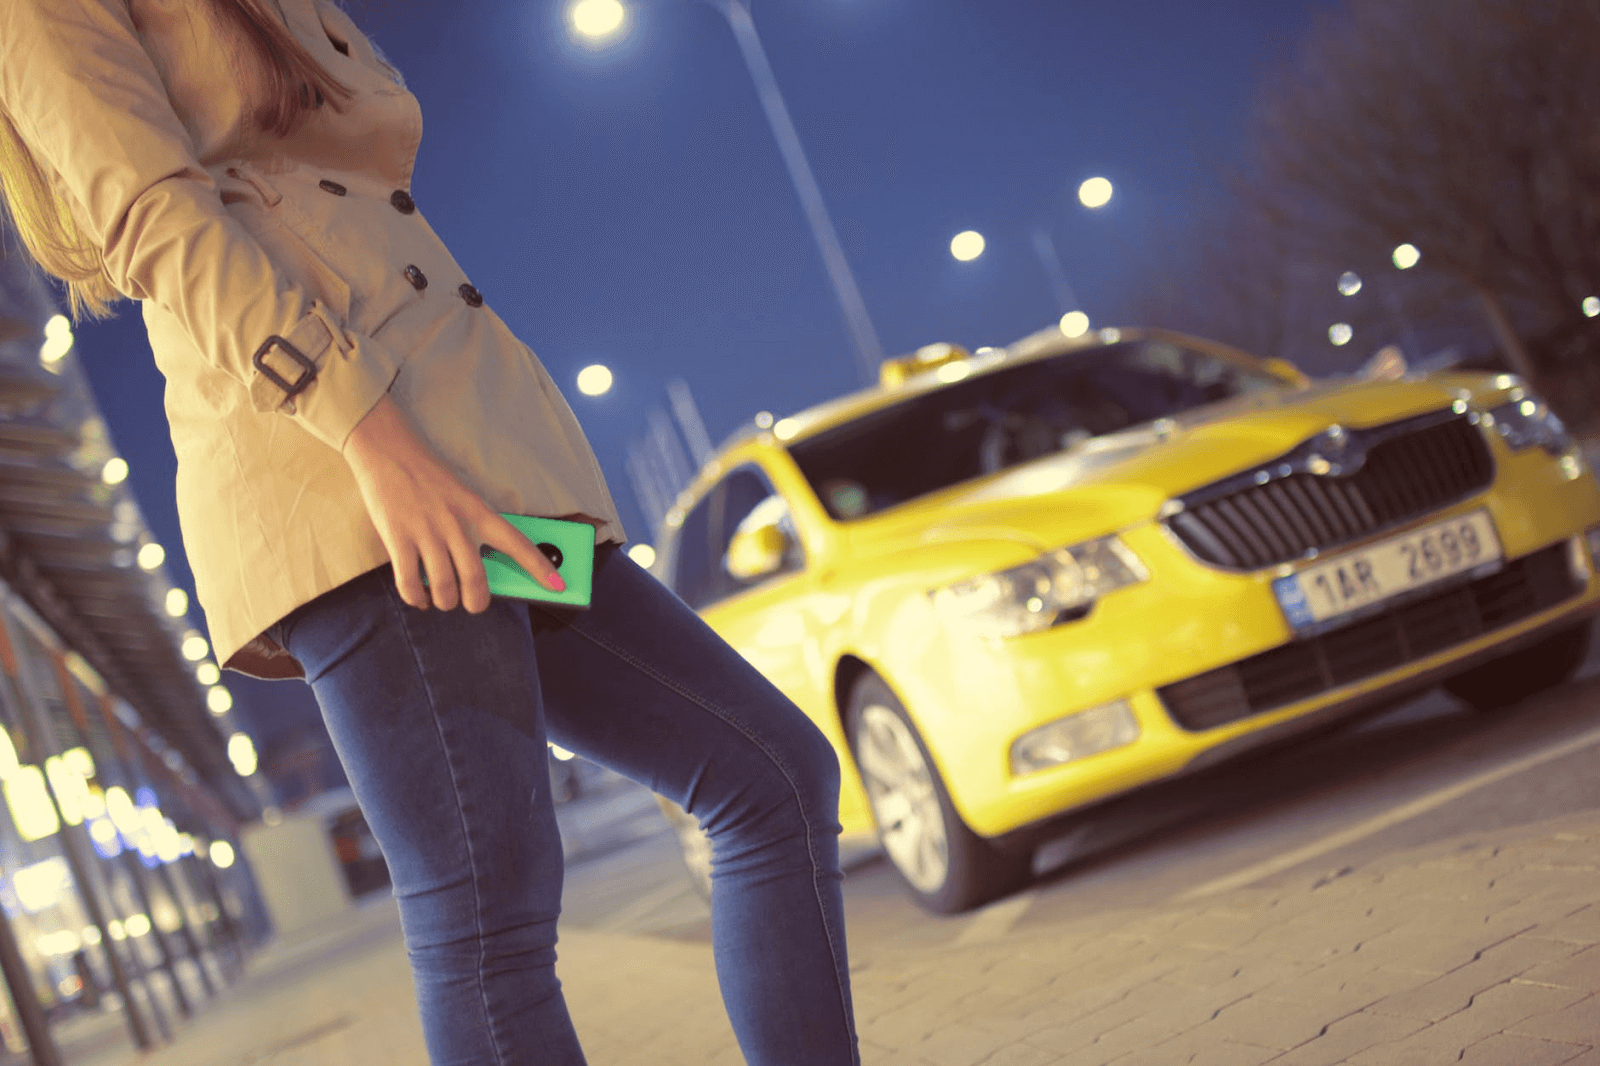 Woman holding phone to call Uber in front of taxi